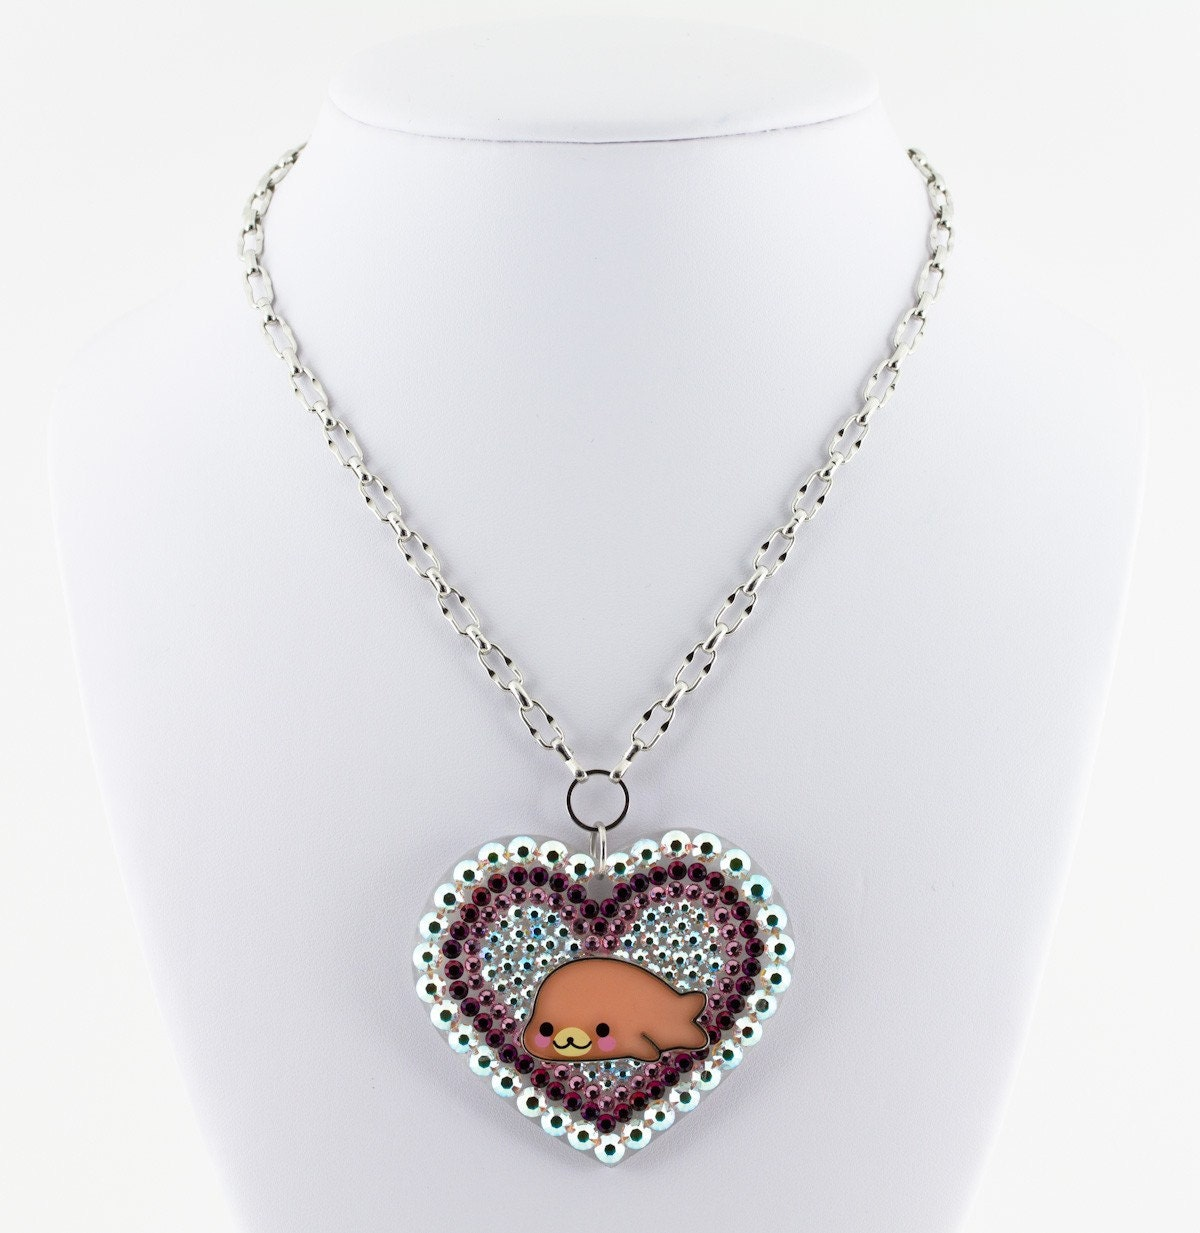 Huge Bling Mamegoma Happy Seal Swarovski Crystal Heart Pendant on funky rhodium plated chain cute japanese lolita style/inspired